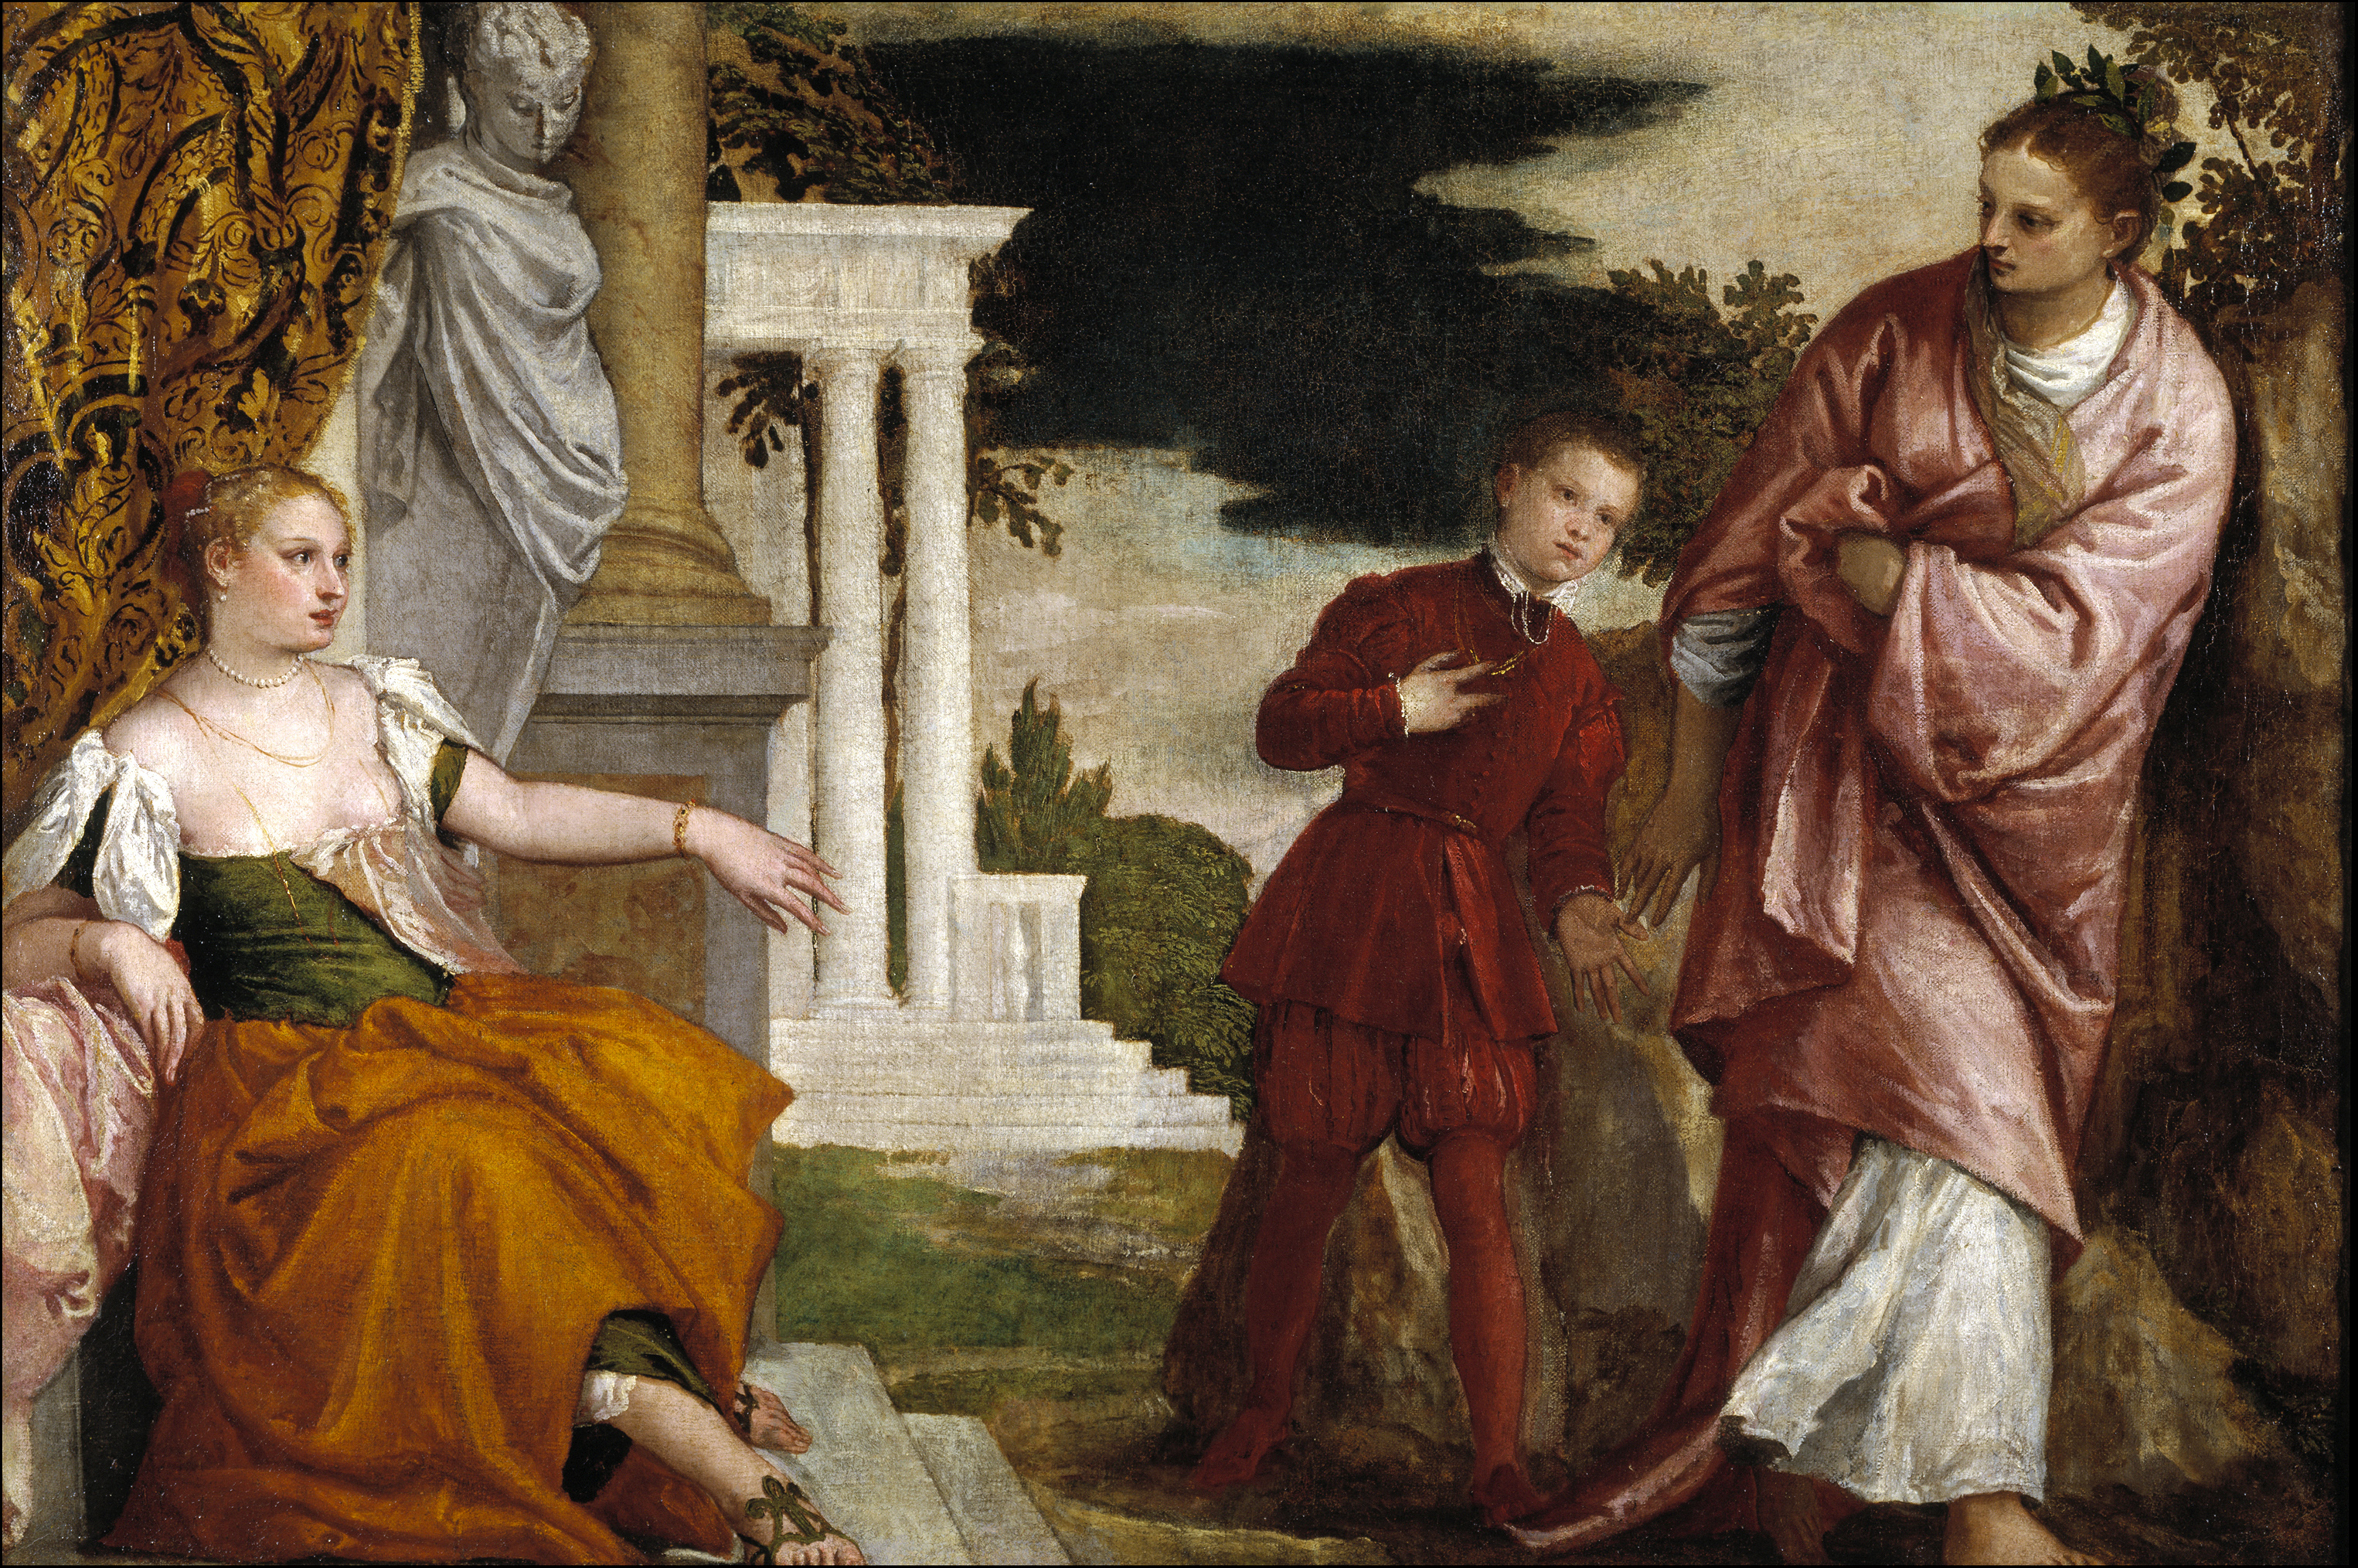 Youth Between Vice and Virtue, by Paolo Veronese, c. 1581. Prado Museum, Madrid, Spain.